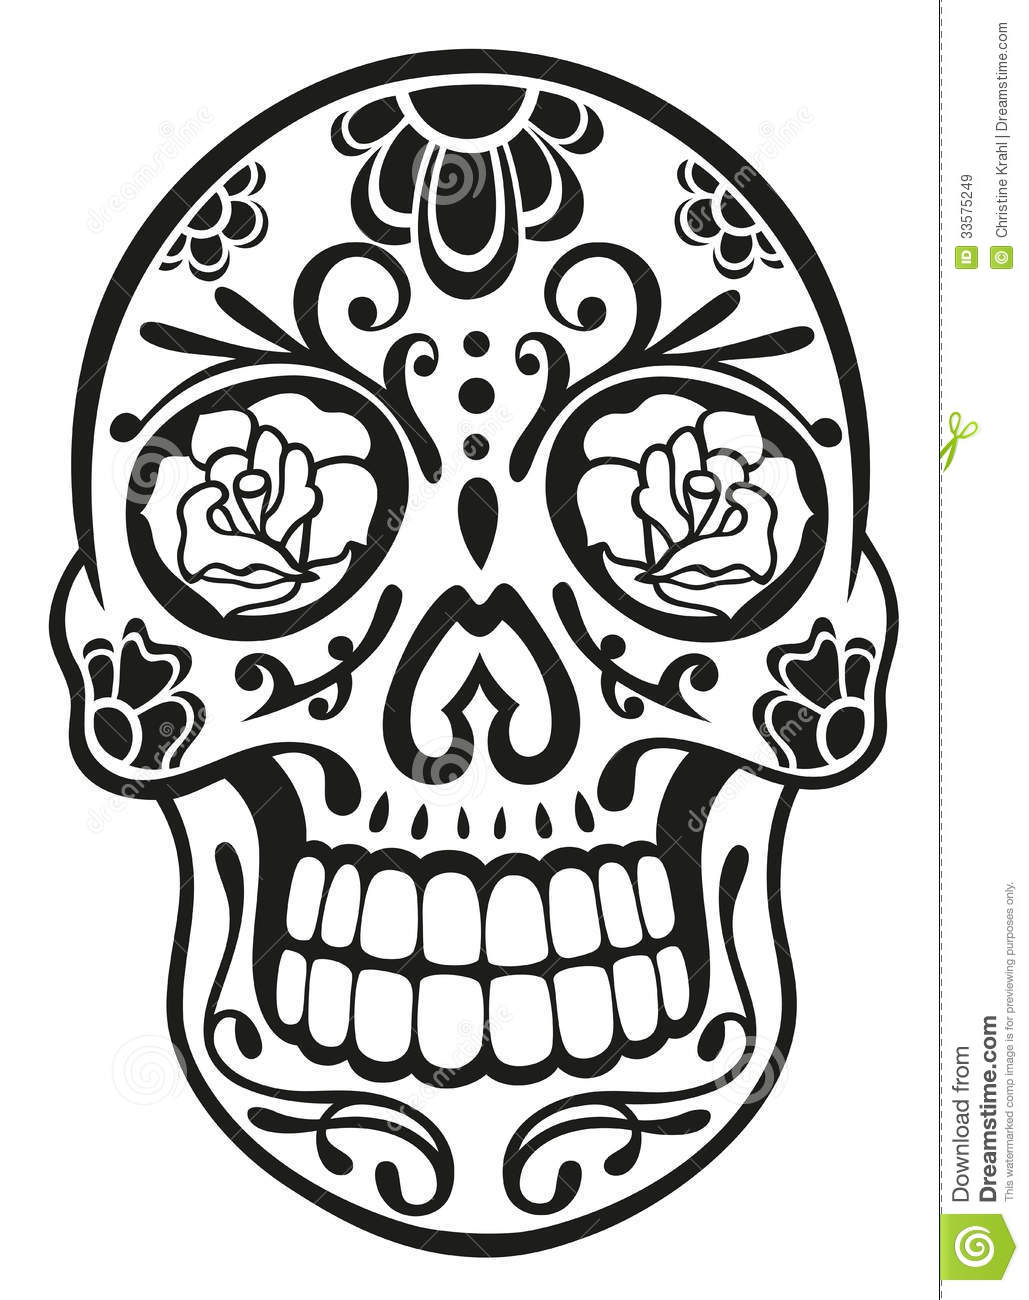 Skull Sugar Skull Royalty Free Stock Images Image 33575249